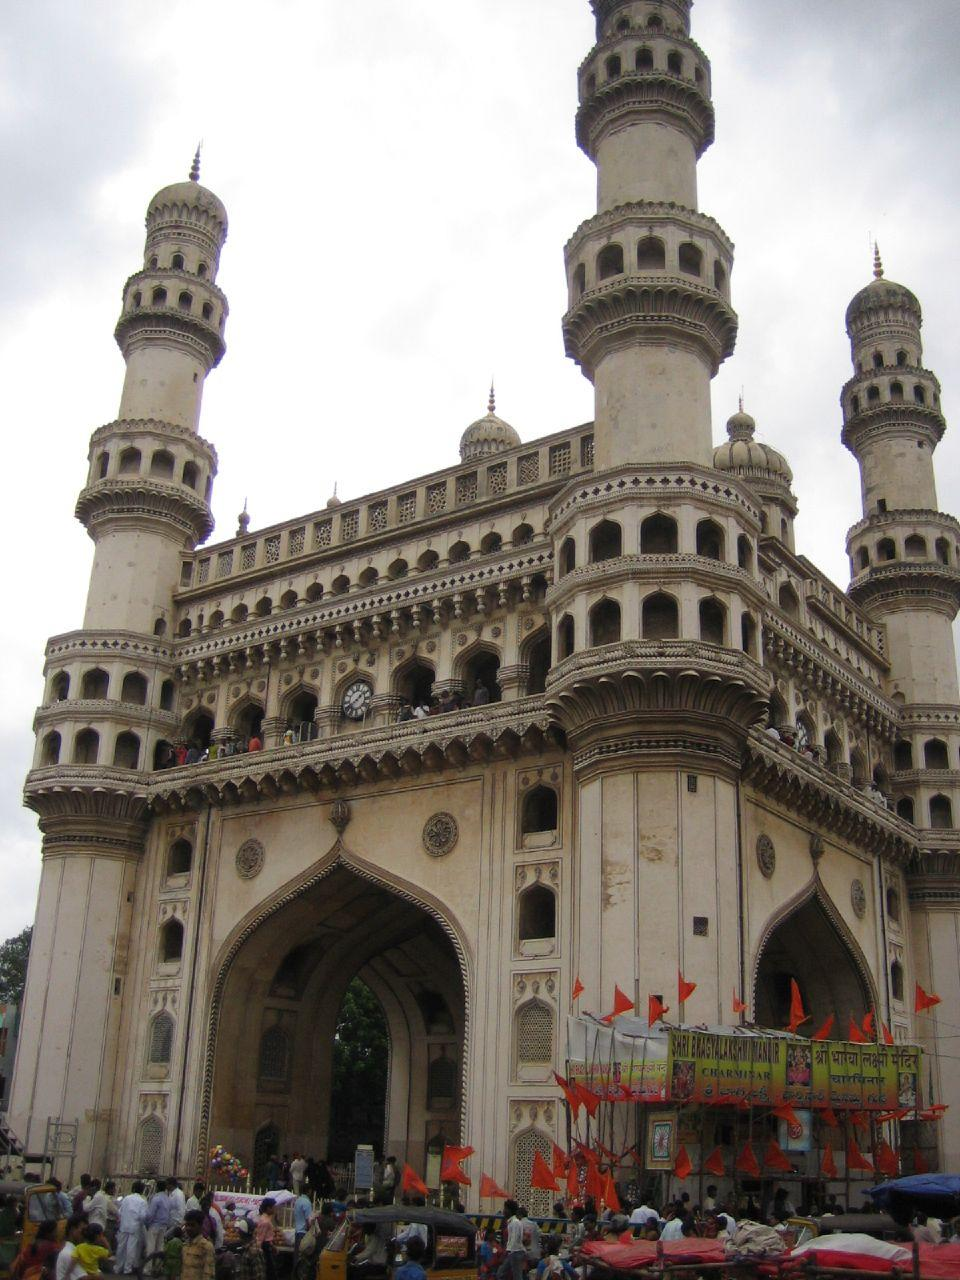 Hyderabad with <b>Rs 3,500-4,000</b> as the average room rate records the lowest average occupancy rate as well to 54 percent. The ARR's have also declined in an attempt to maintain occupancy. (Photo: Linda/Flickr)